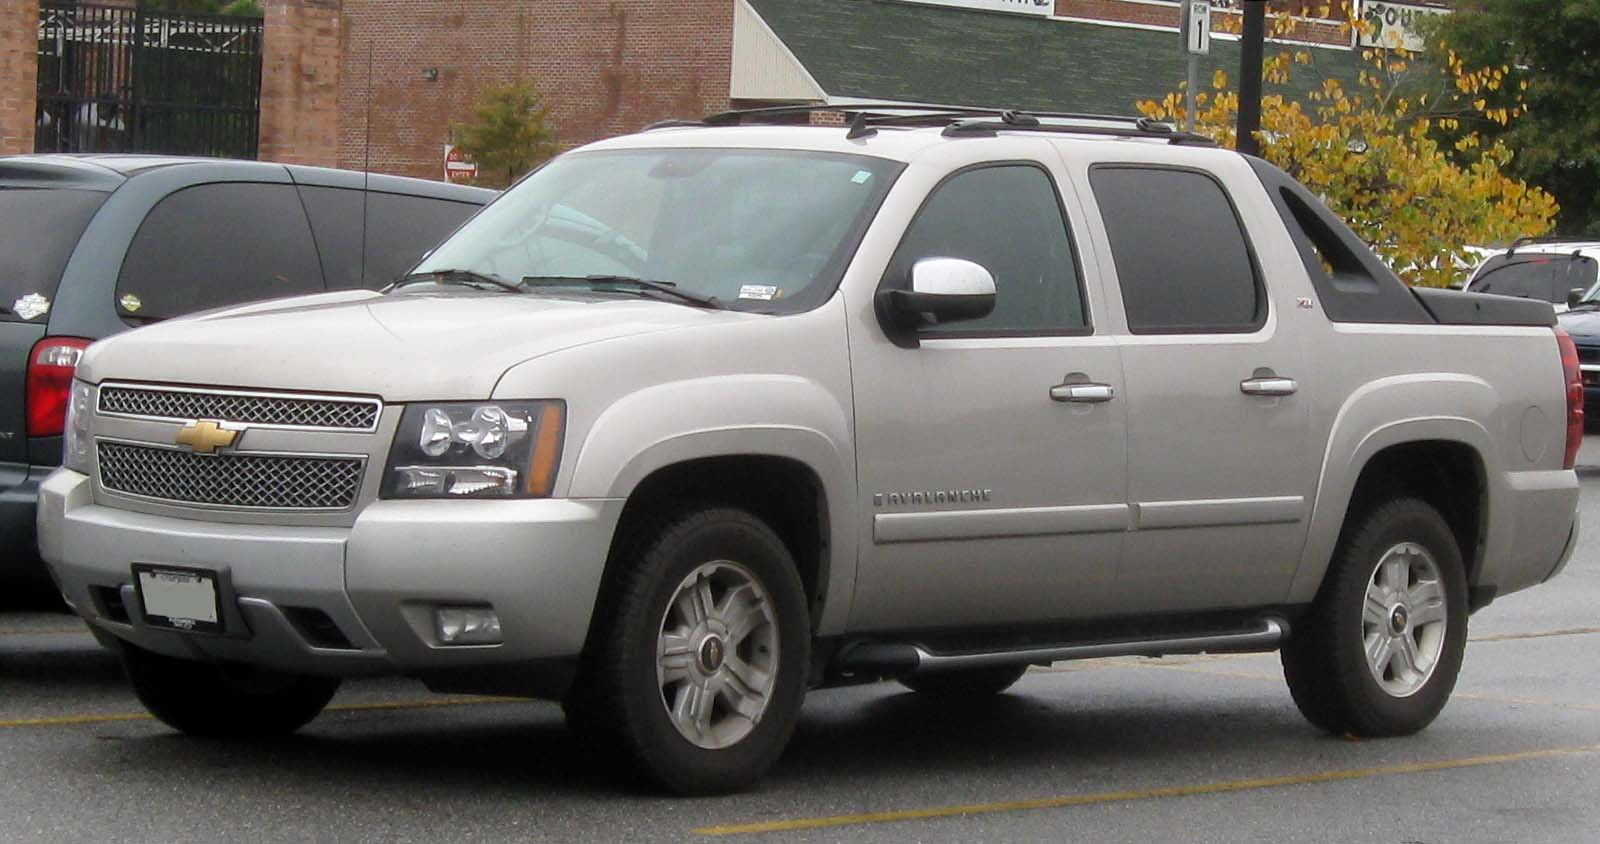 2009 chevrolet avalanche information and photos zombiedrive. Black Bedroom Furniture Sets. Home Design Ideas